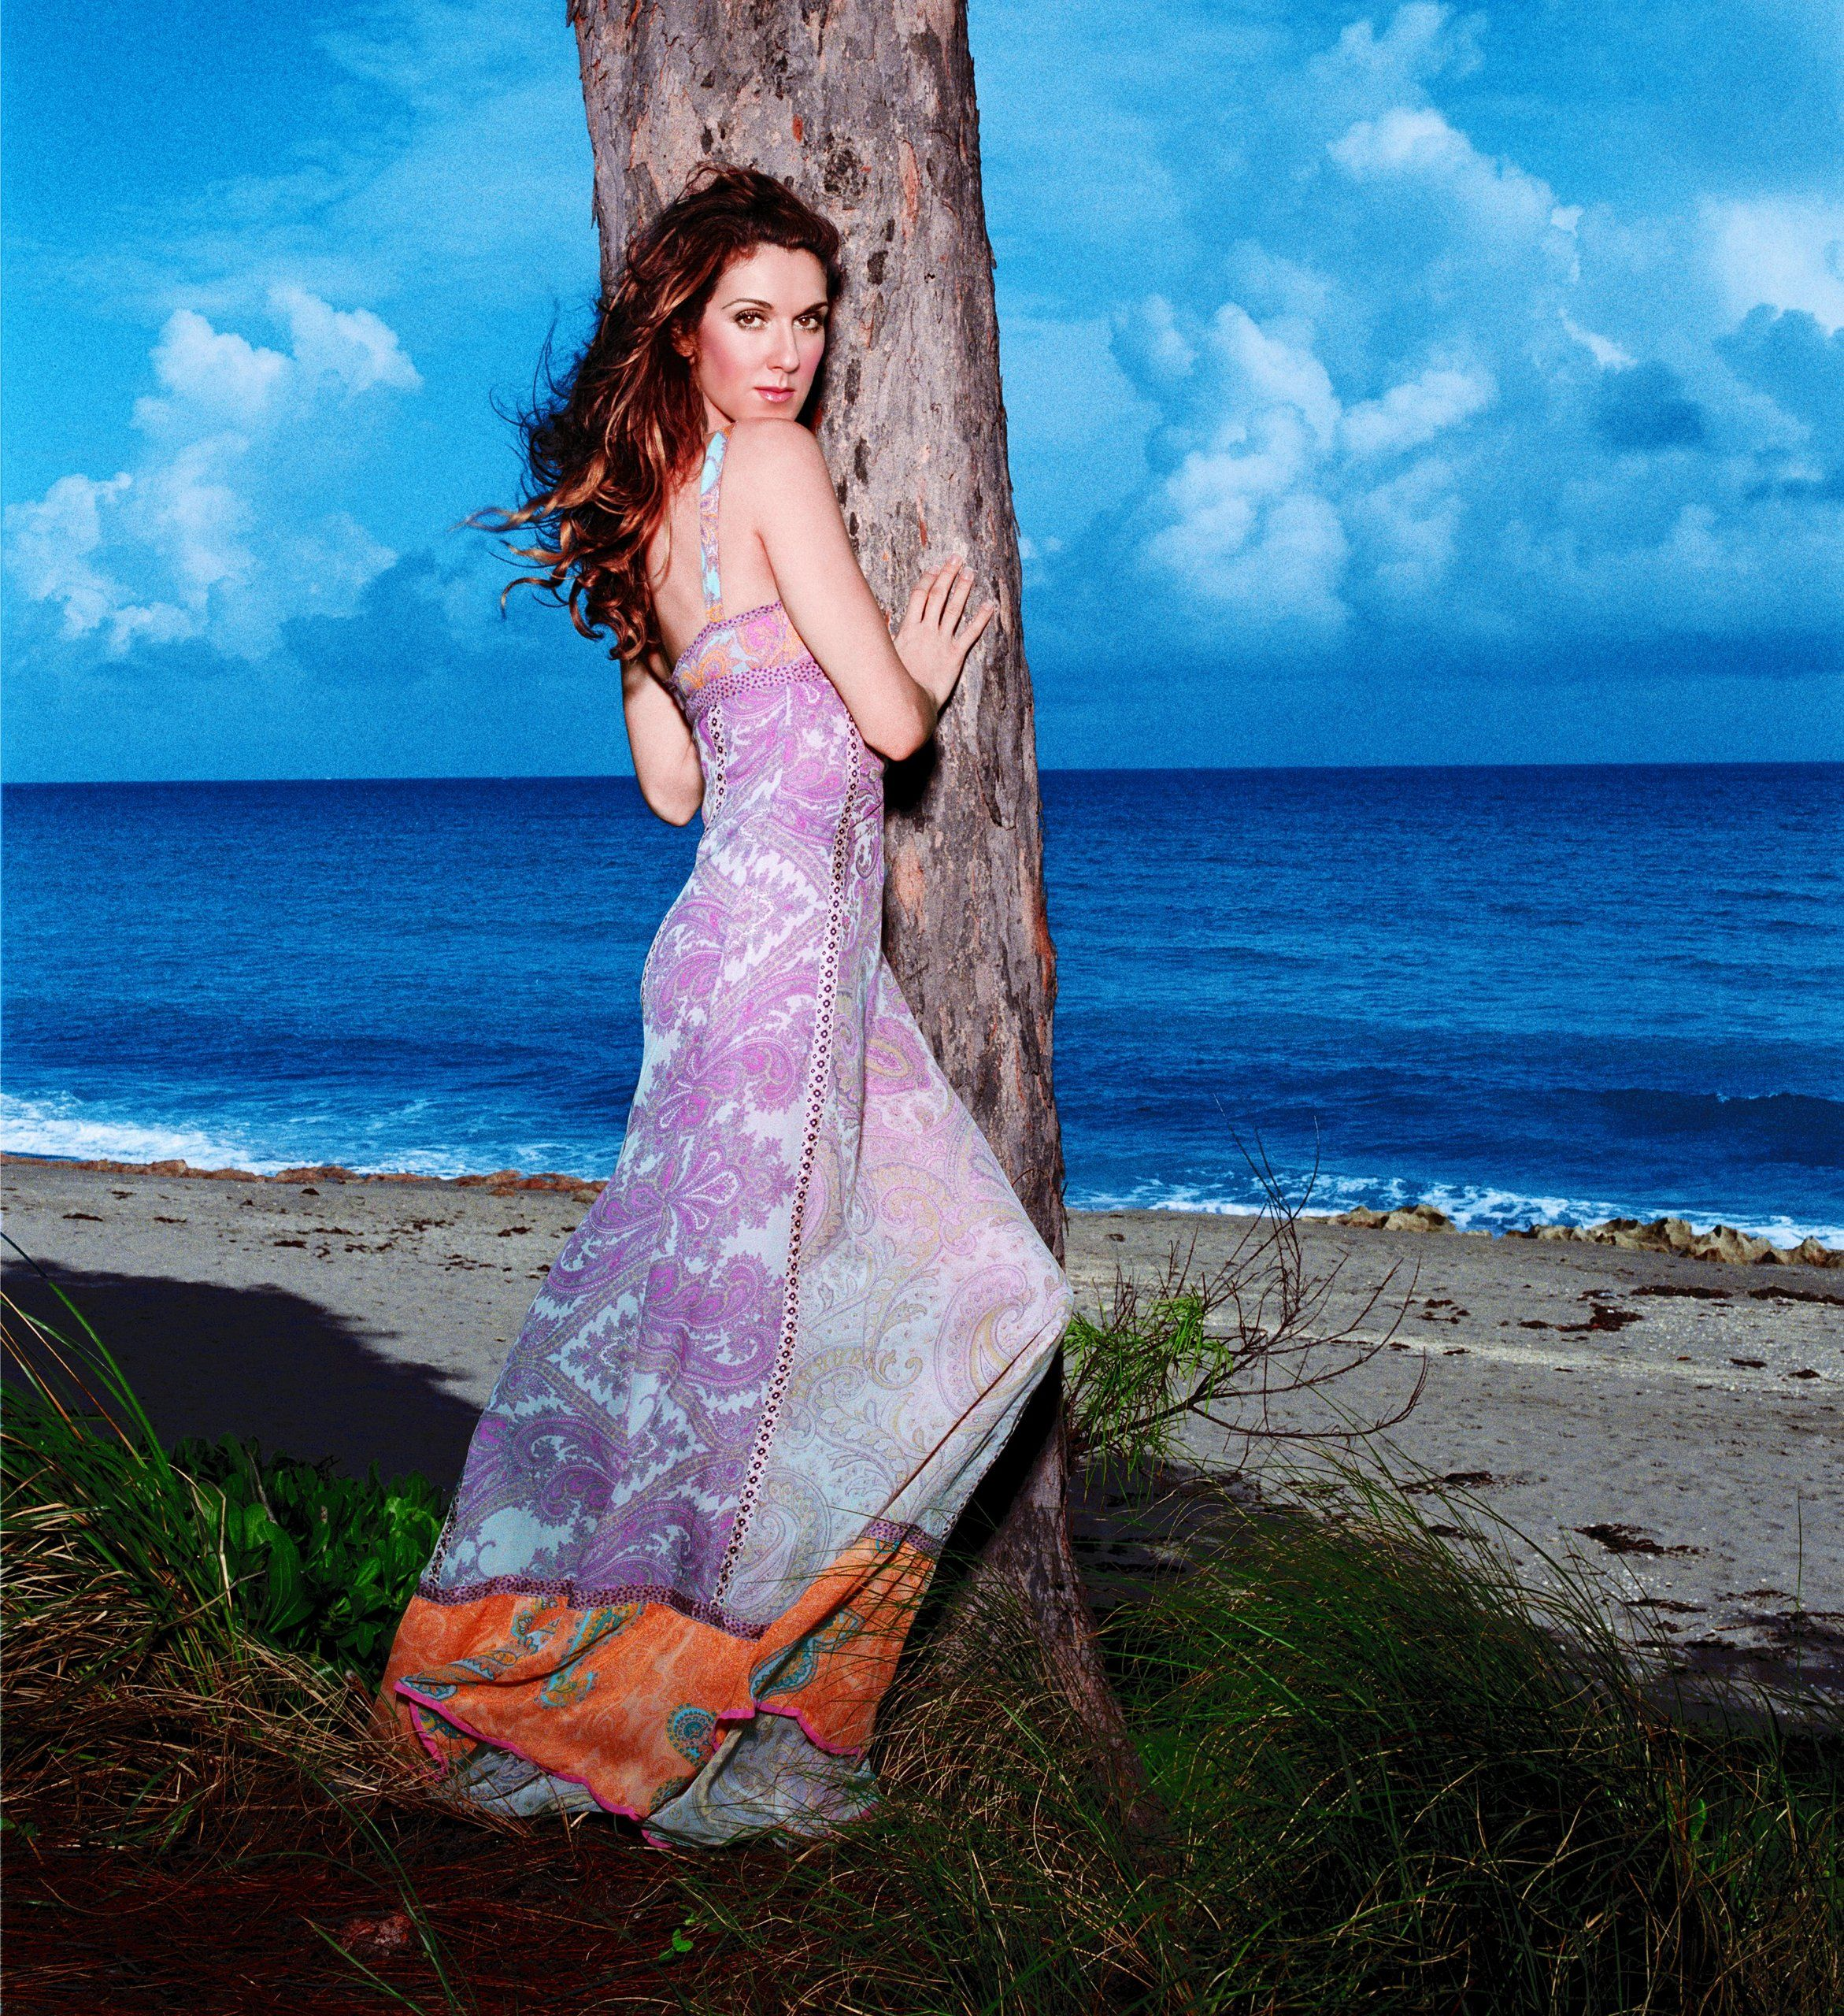 Celine Dion A New Day Has Come Photoshoots Buscar Con Google Celine Dion Celine Dion